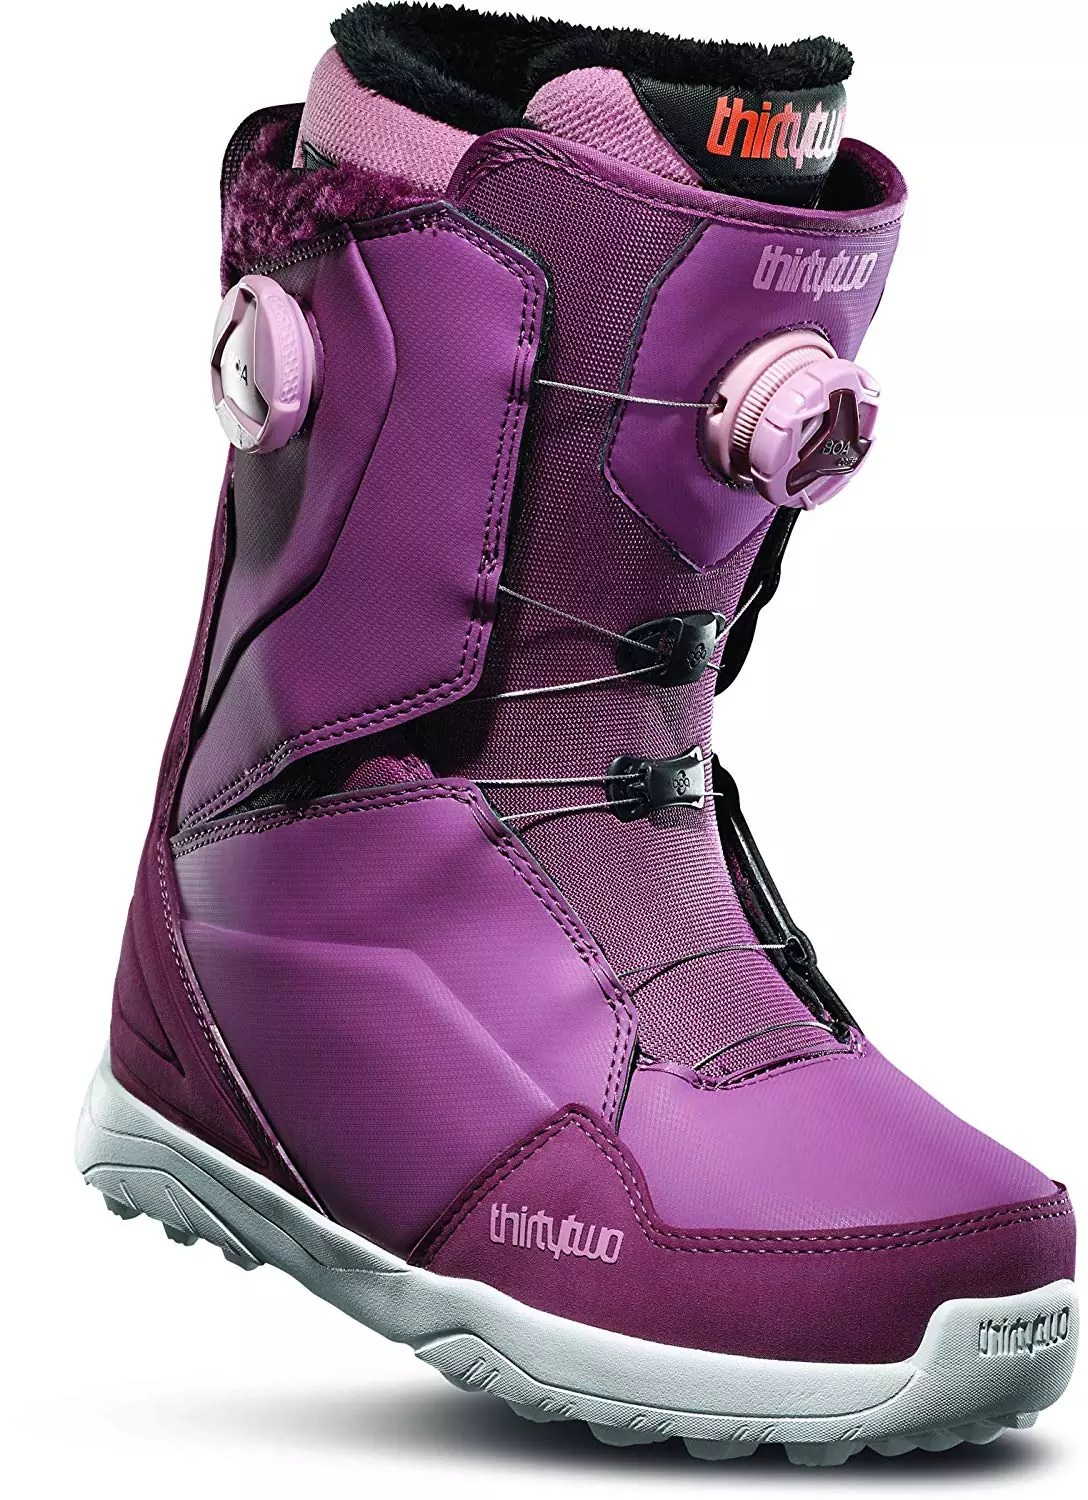 THIRTYTWO LASHED DOUBLE BOA WOMEN'S SNOWBOARD BOOT